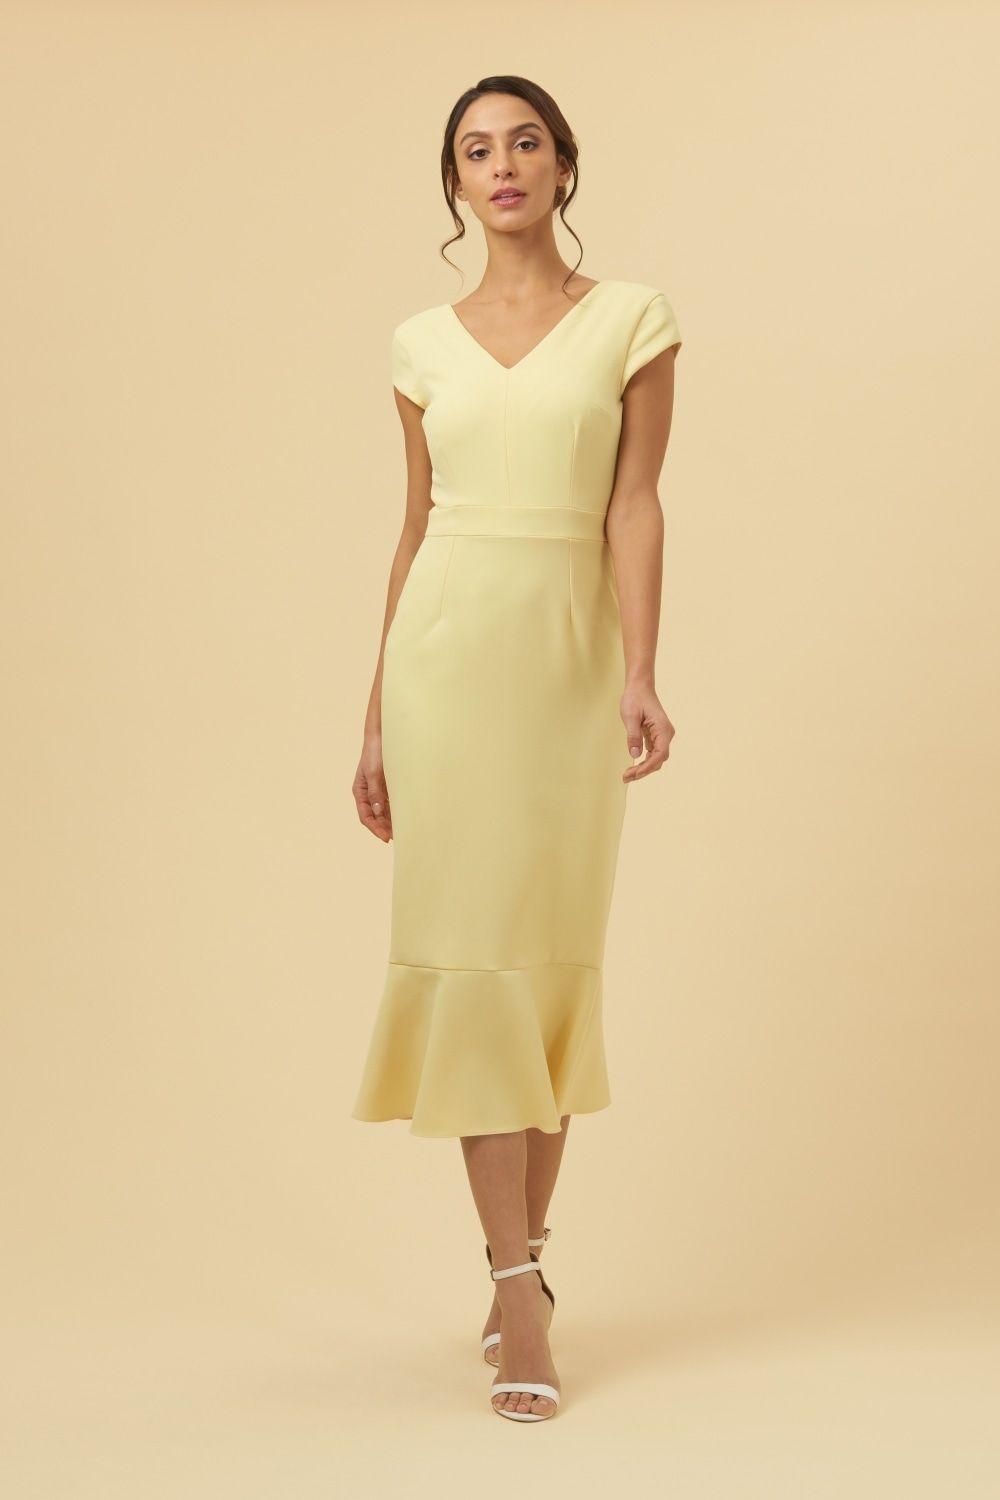 c925492814e Introducing the Katja Cap Sleeve Midi Dress. A contemporary design  featuring a V neckline which flows into a flattering square back neckline